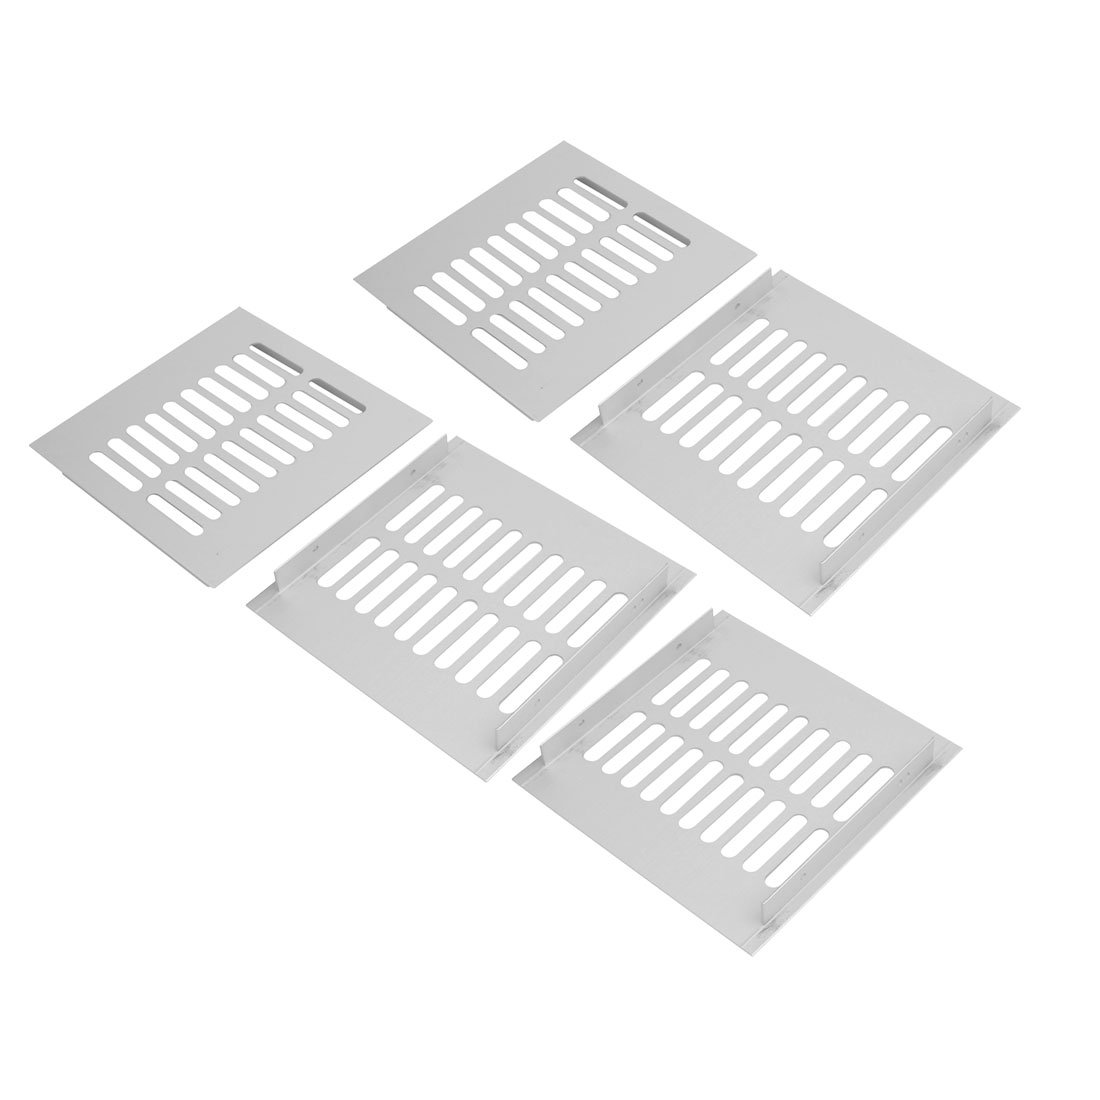 uxcell 5pcs 150mmx150mm Aluminum Alloy Air Vent Louvered Grill Cover Ventilation Grille